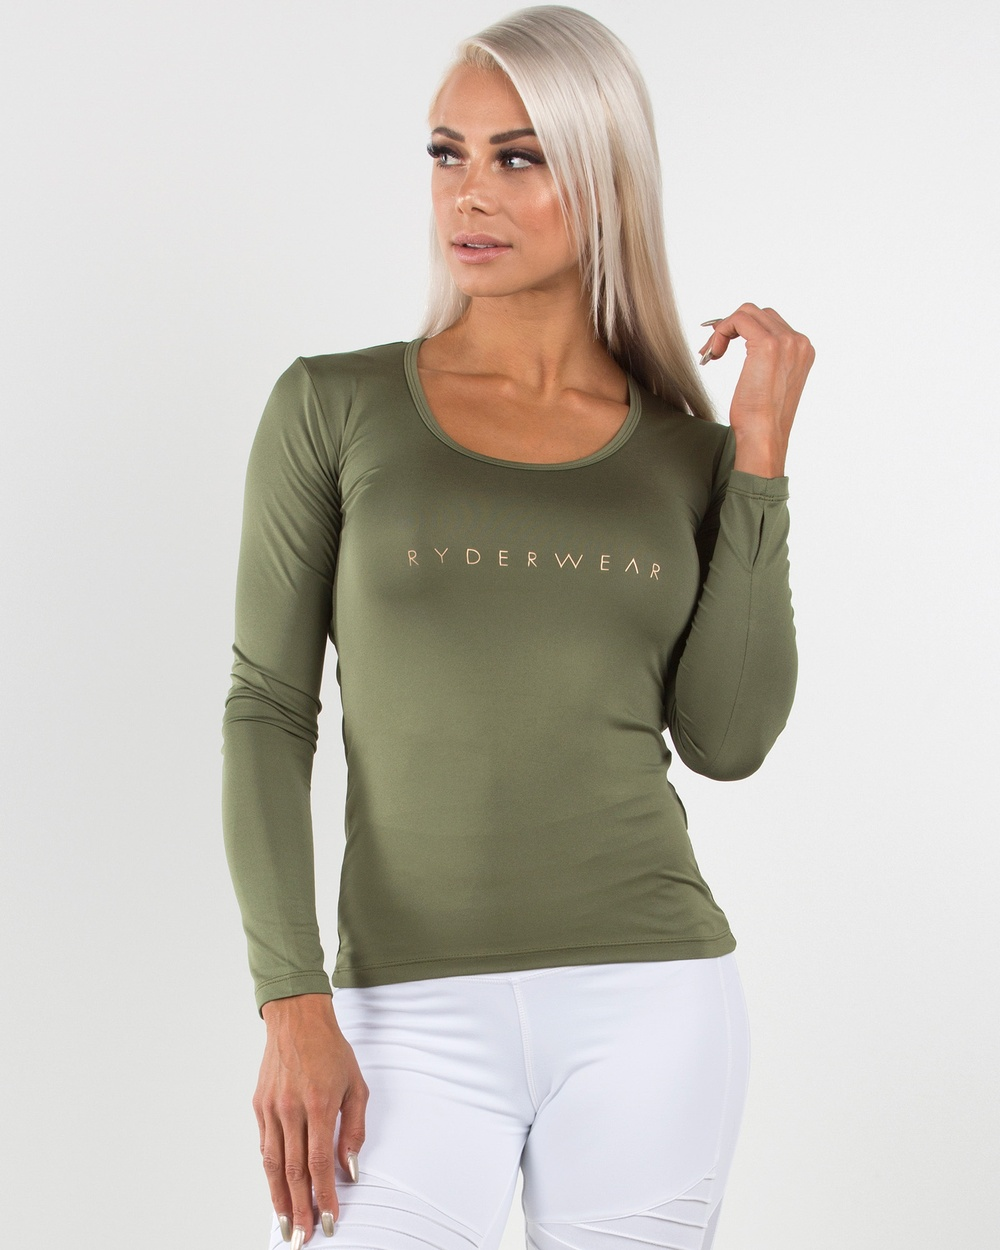 Ryderwear Highway Long Sleeve Top Tops Khaki Highway Long Sleeve Top